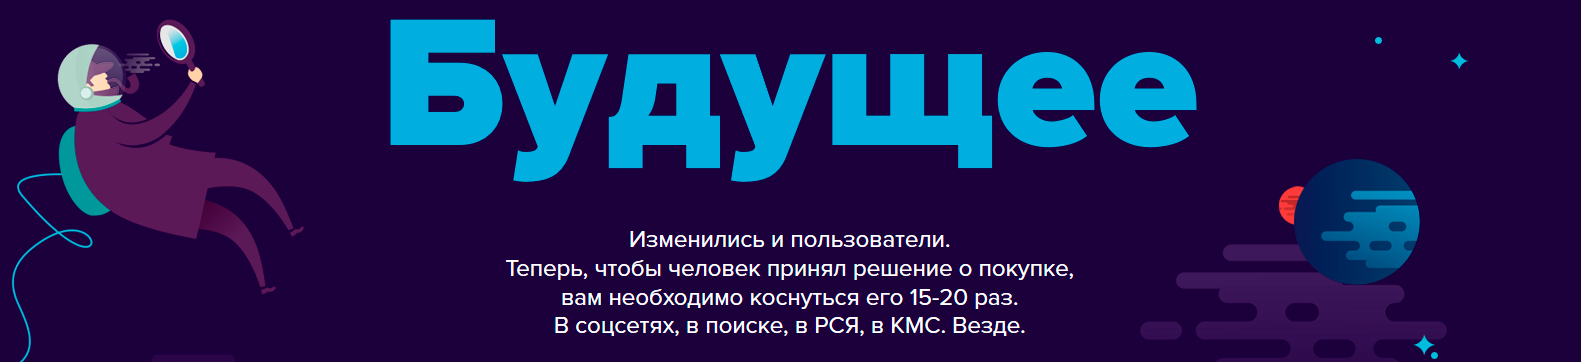 find-trafic-krizis-5.png